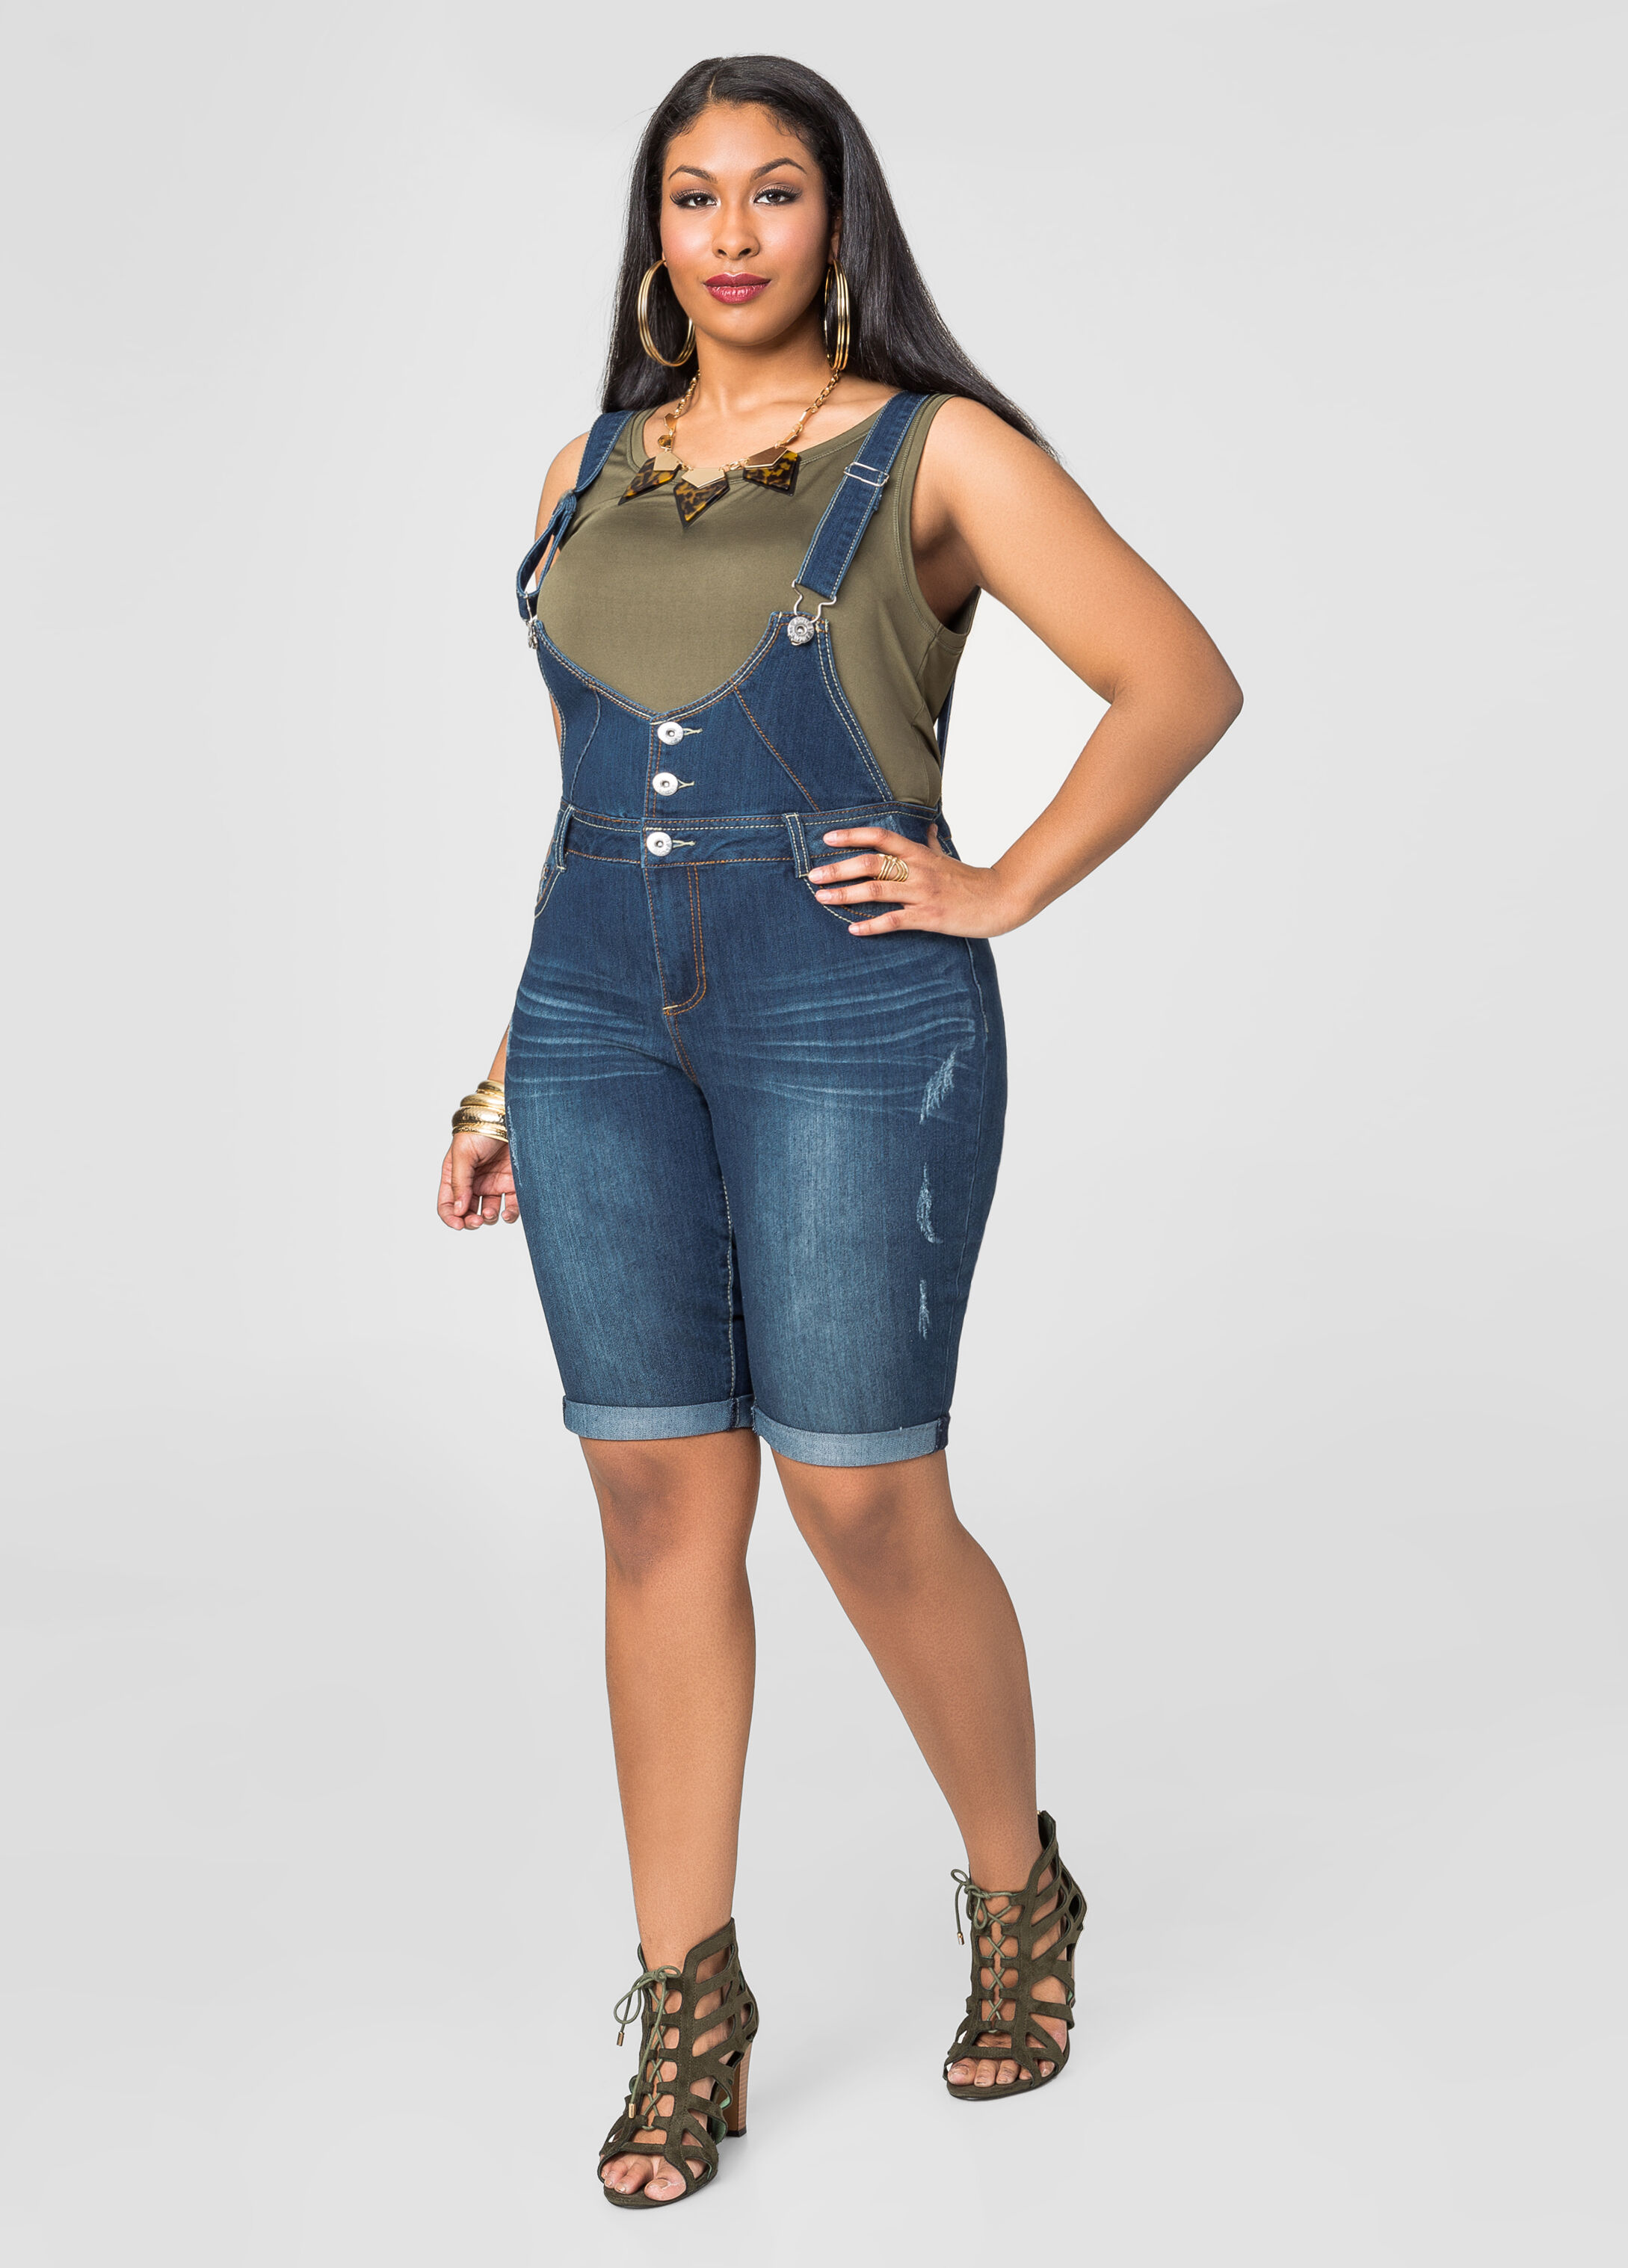 Shop for denim plus size jumpers online at Target. Free shipping on purchases over $35 and save 5% every day with your Target REDcard.